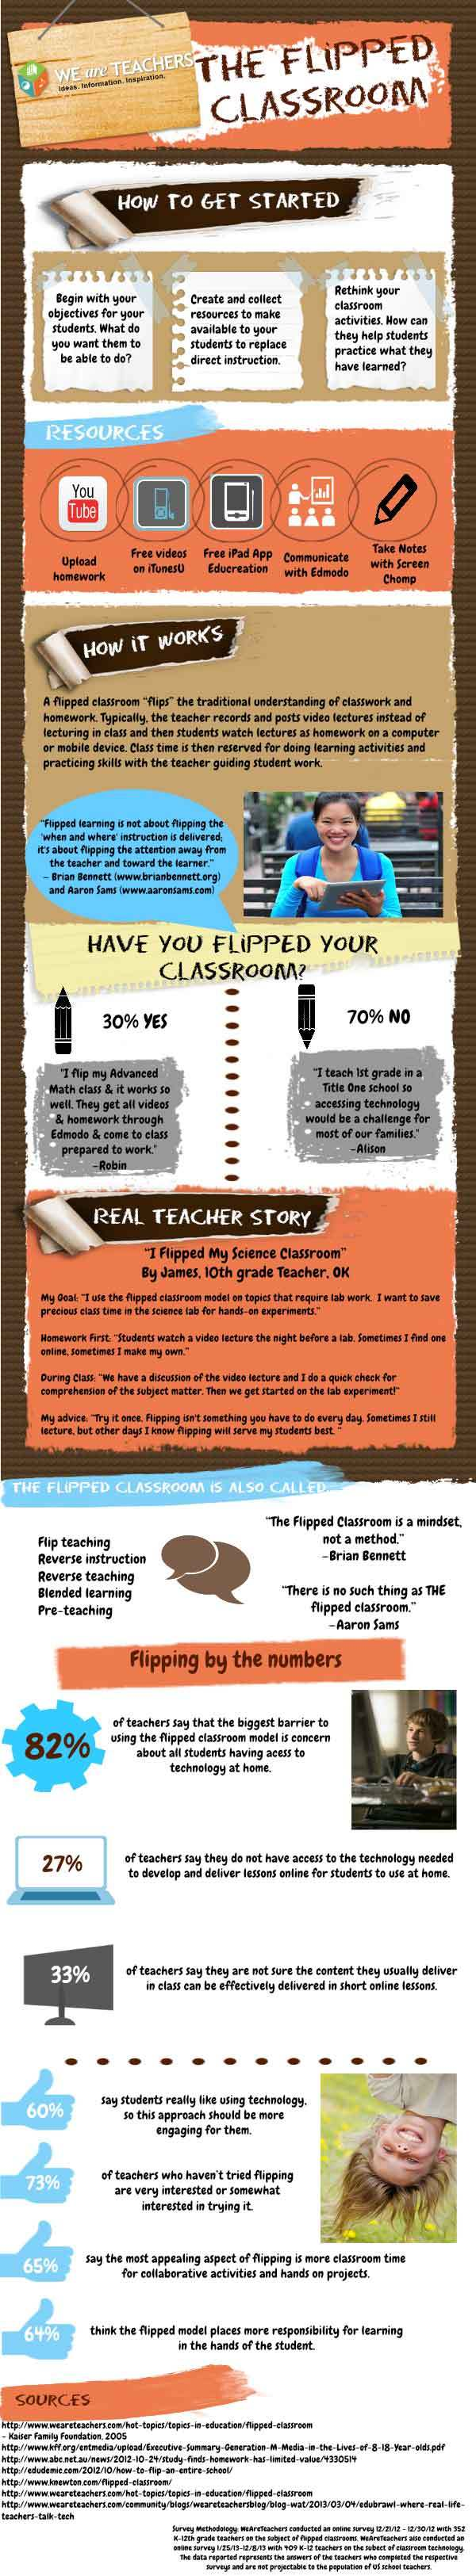 Flipping-the-Classroom-Infographic